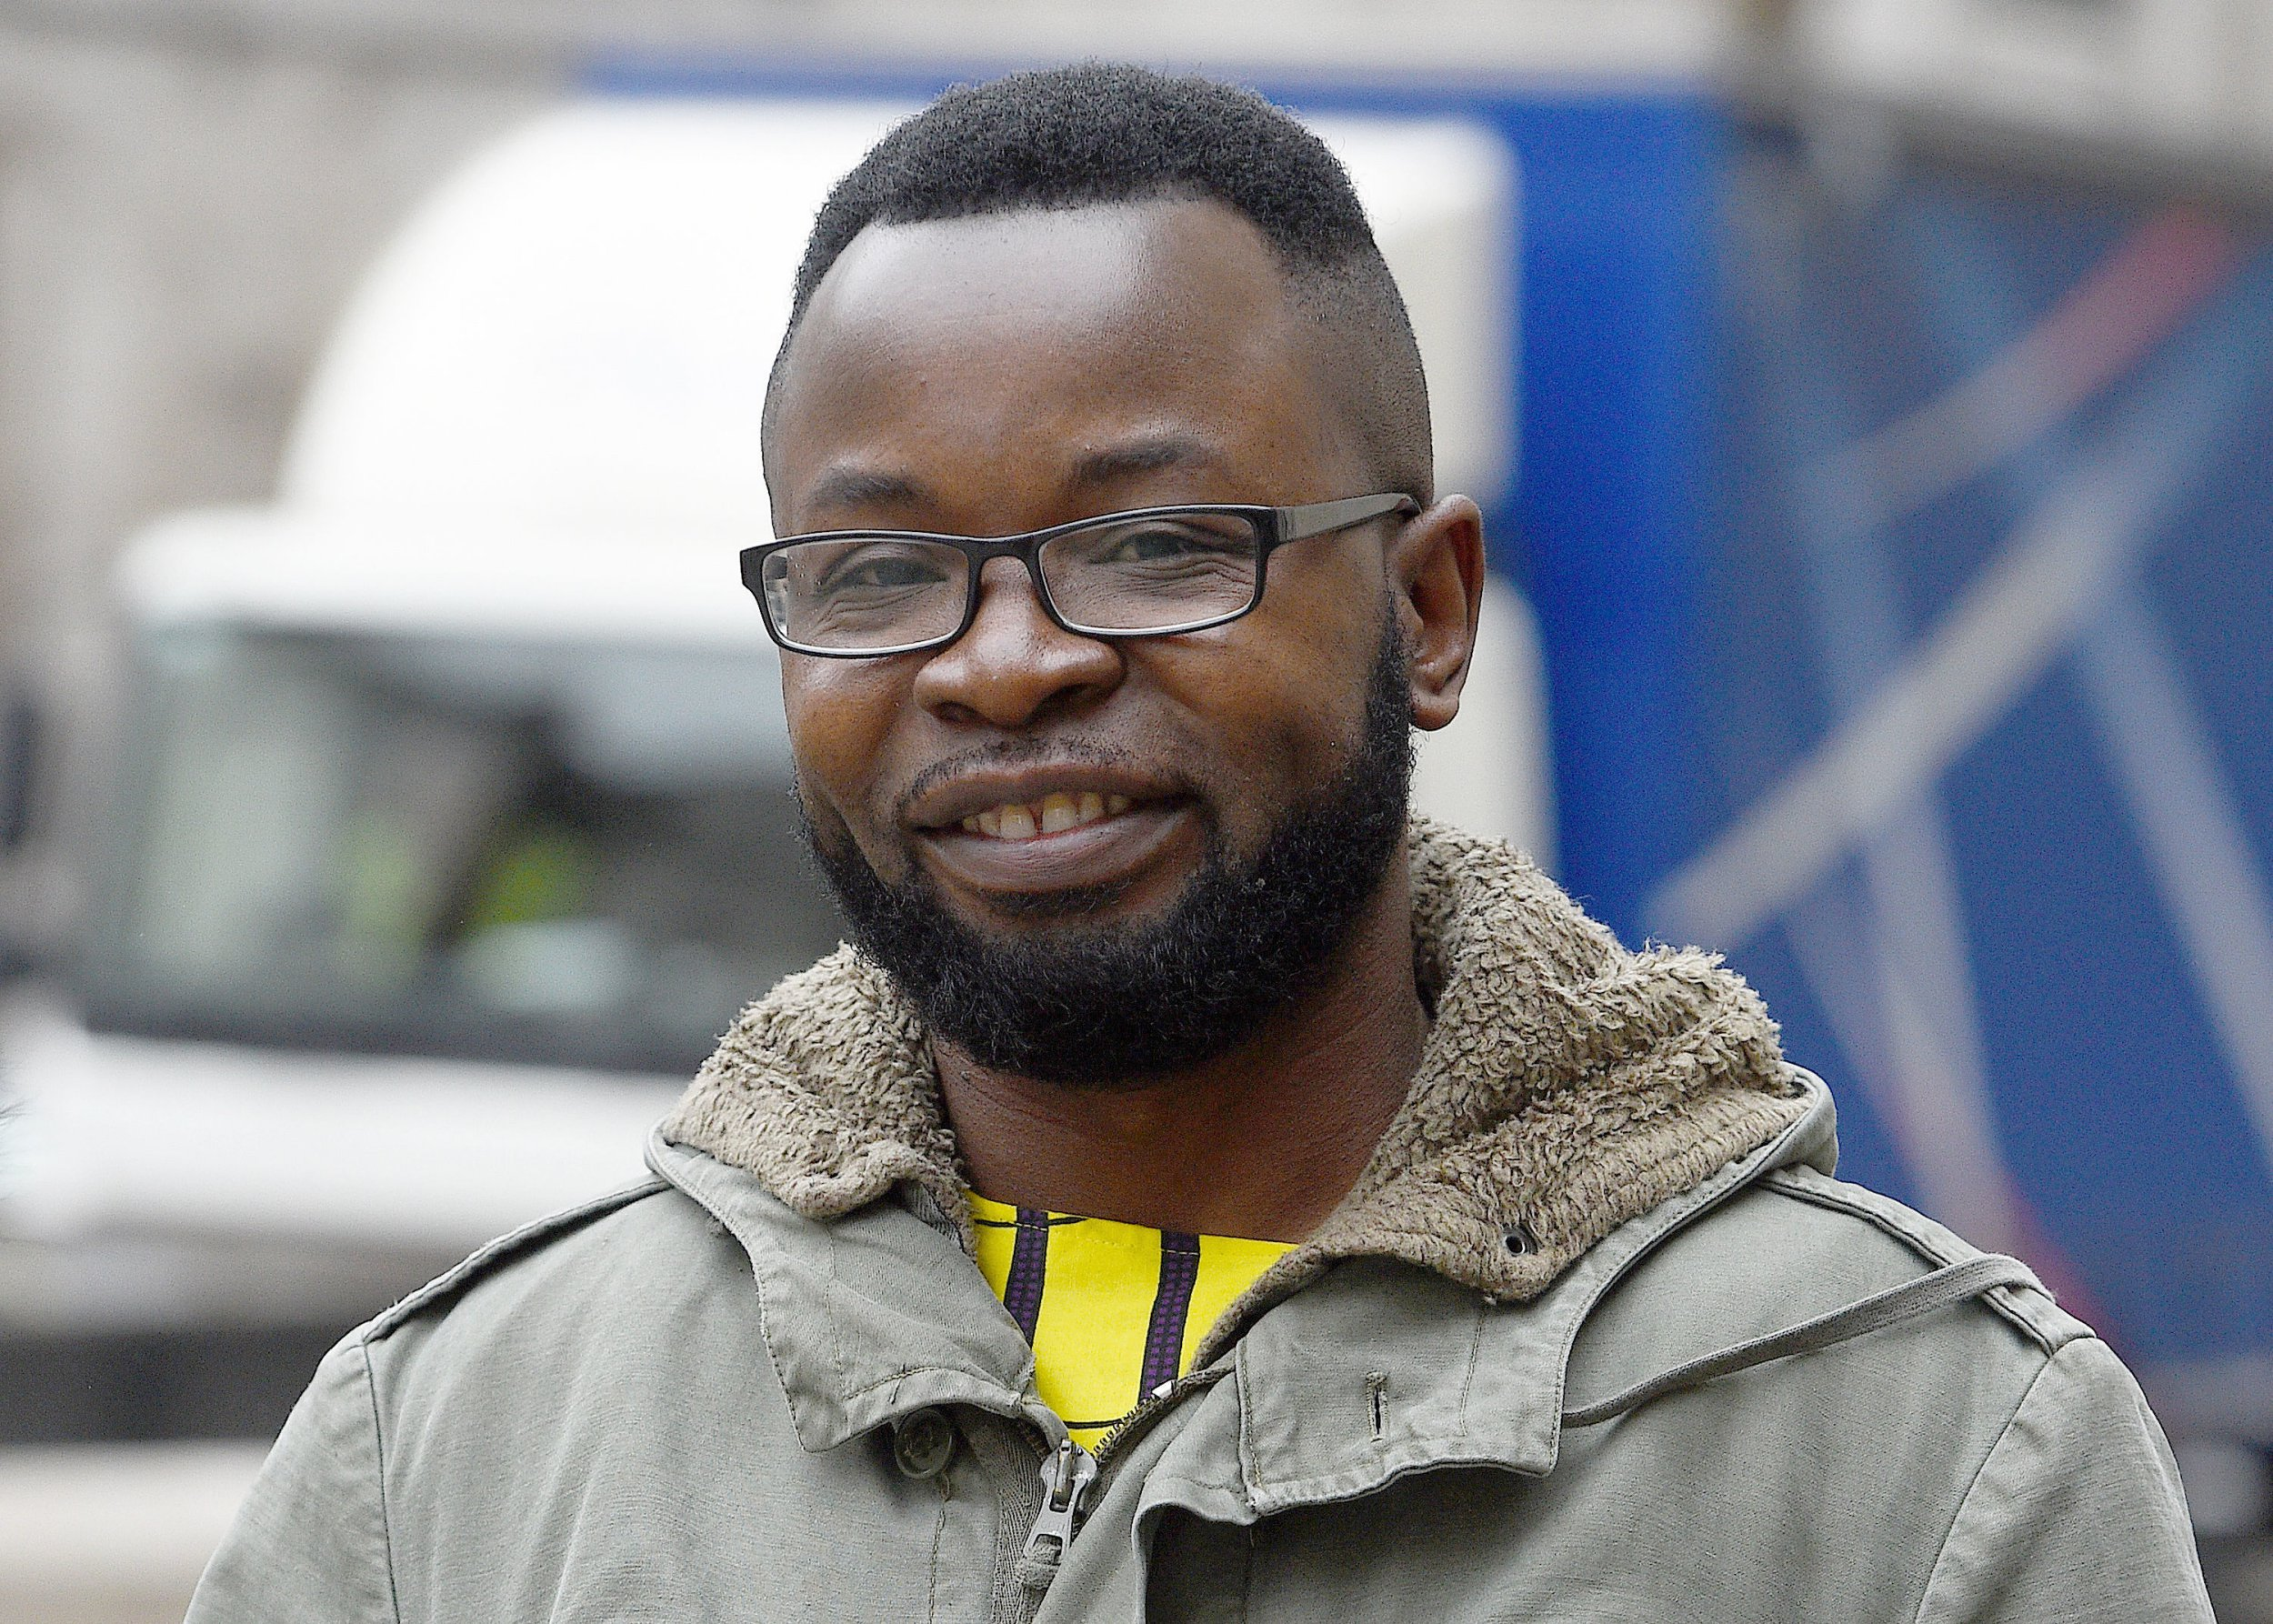 Felix Ngole arrives at the High Court in London, where he is challenging a ruling that he was lawfully removed from a Sheffield social work course after being accused of posting derogatory comments about homosexuals and bisexuals on a Facebook page. PRESS ASSOCIATION Photo. Picture date: Tuesday March 12, 2019. Ngole, of Barnsley, South Yorkshire, who said he was expressing a traditional Christian view and complained that Sheffield University bosses unfairly stopped him completing a postgraduate degree, has mounted an appeal after losing a High Court fight. In October 2017, Deputy High Court judge Rowena Collins Rice ruled that university bosses had acted within the law following a High Court trial in London. See PA story COURTS Sin. Photo credit should read: Kirsty O'Connor/PA Wire